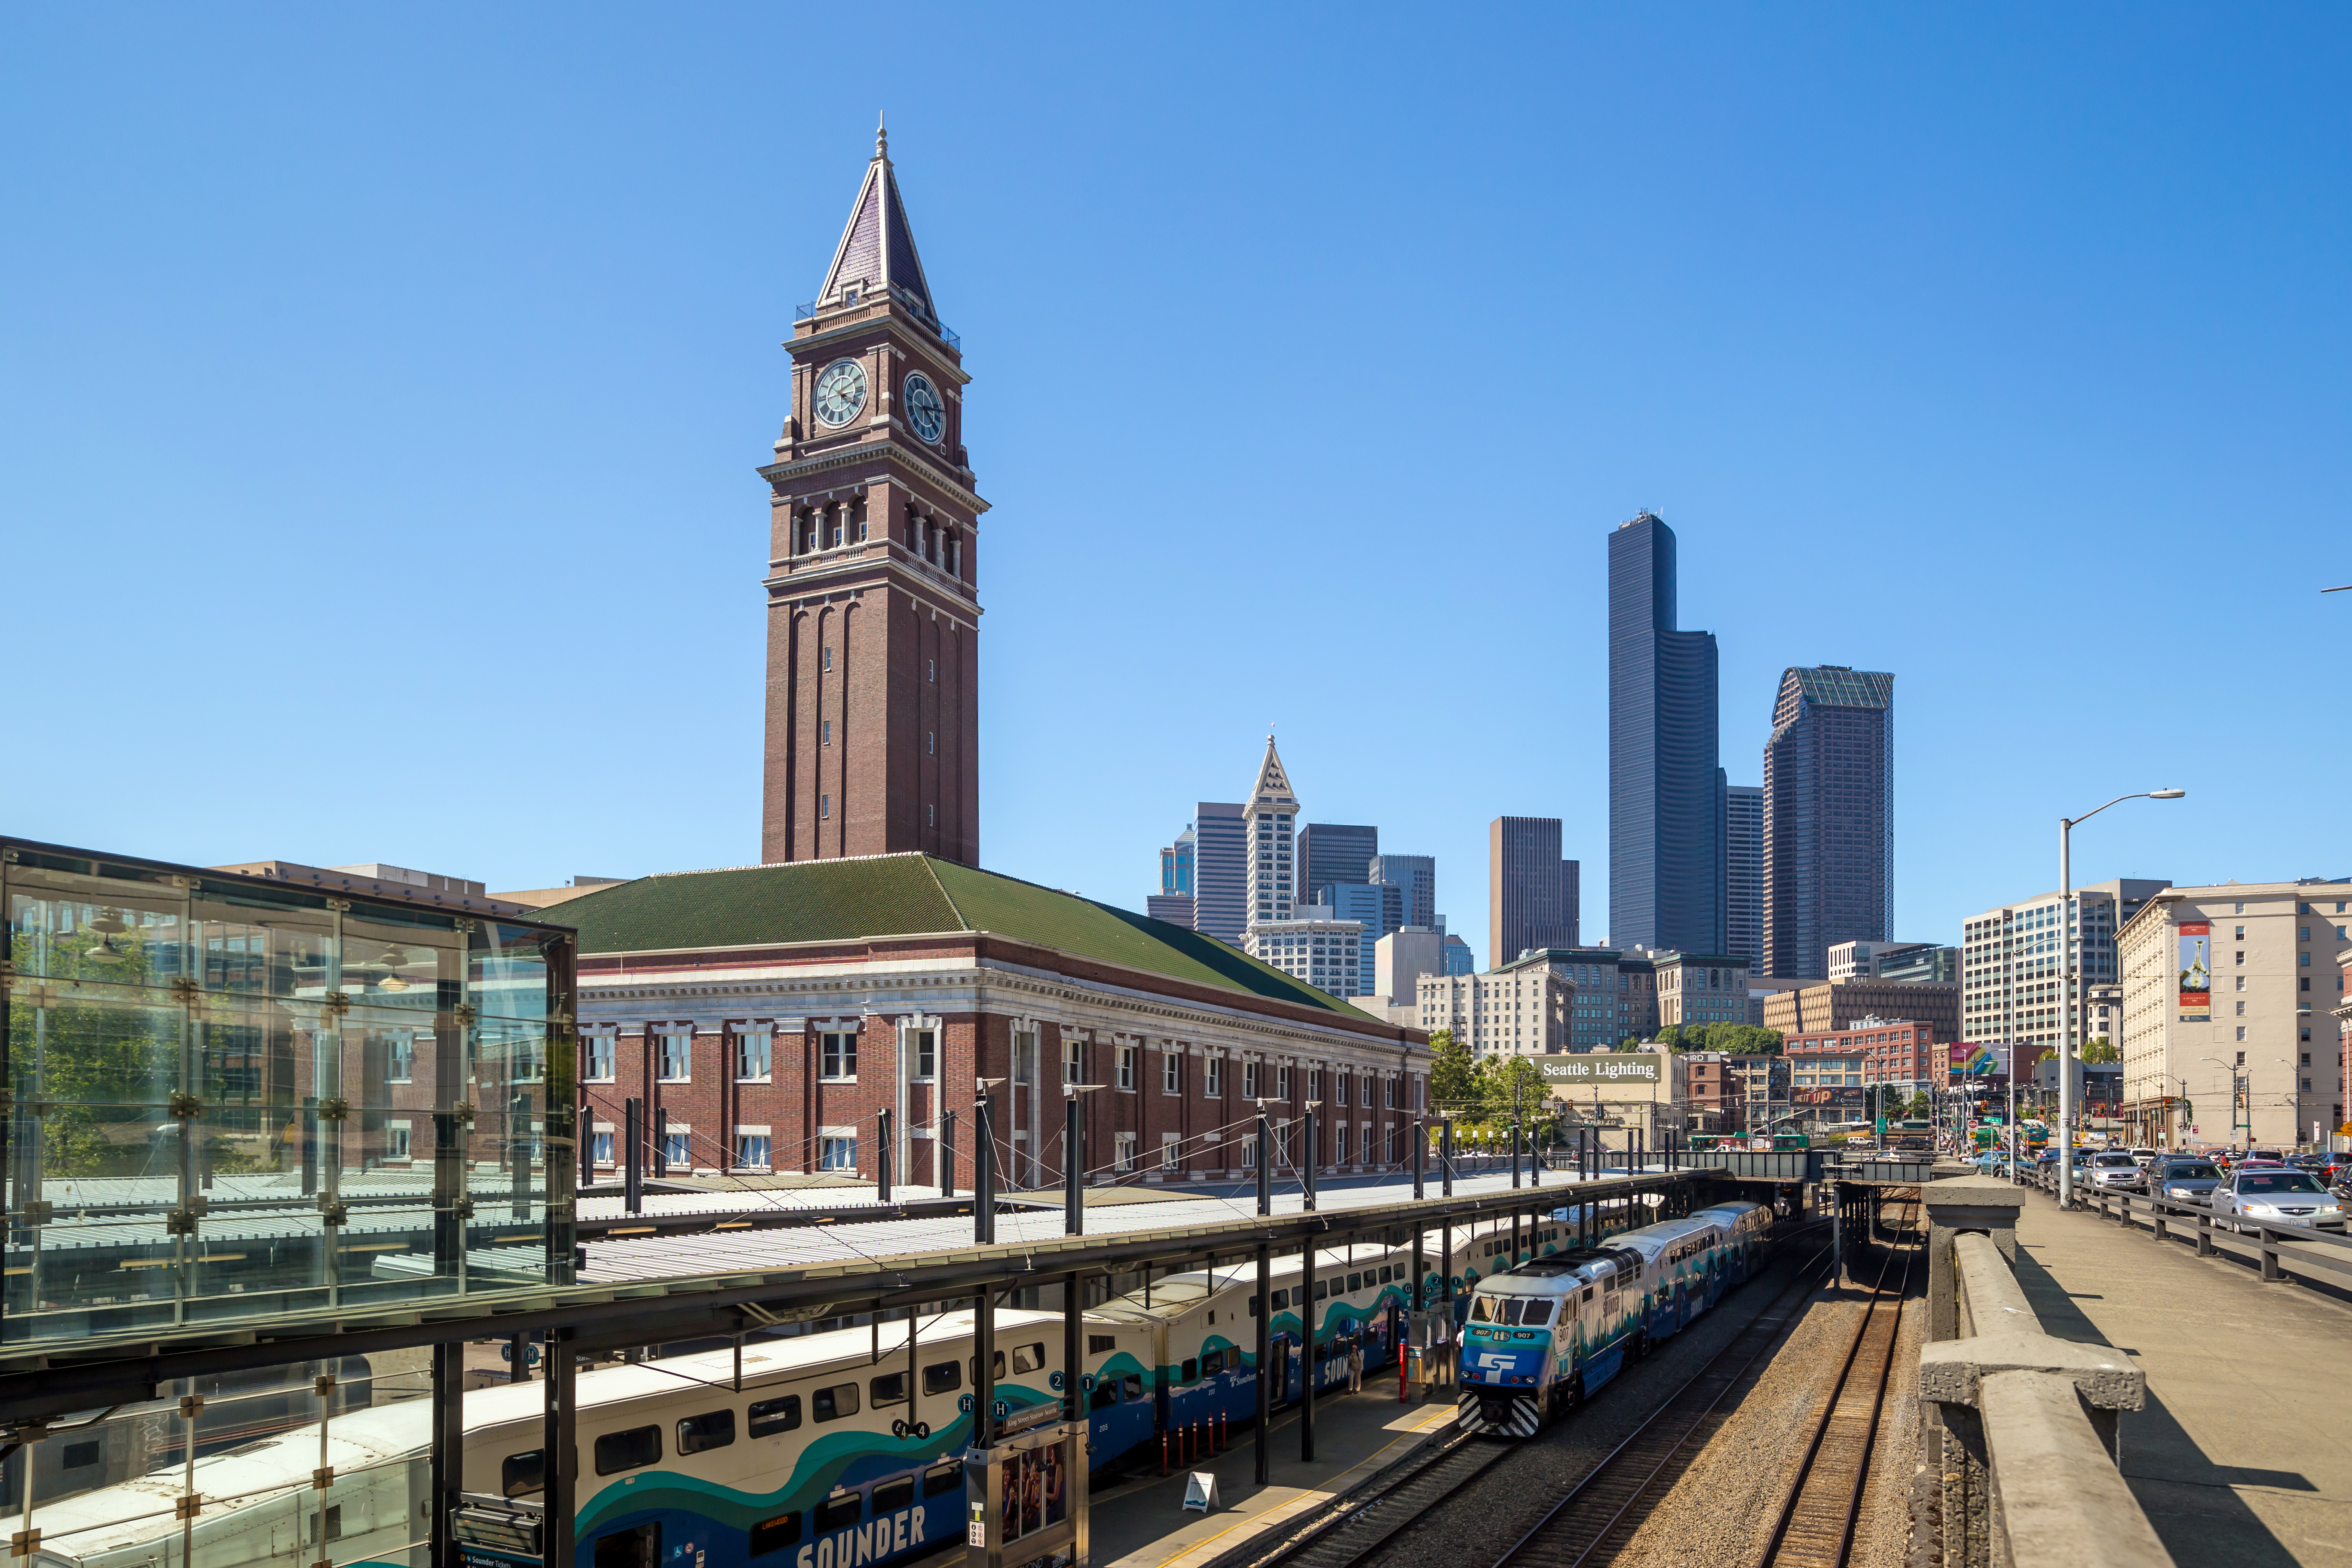 King Street Station was Seattle's long-awaited link to the rest of the nation